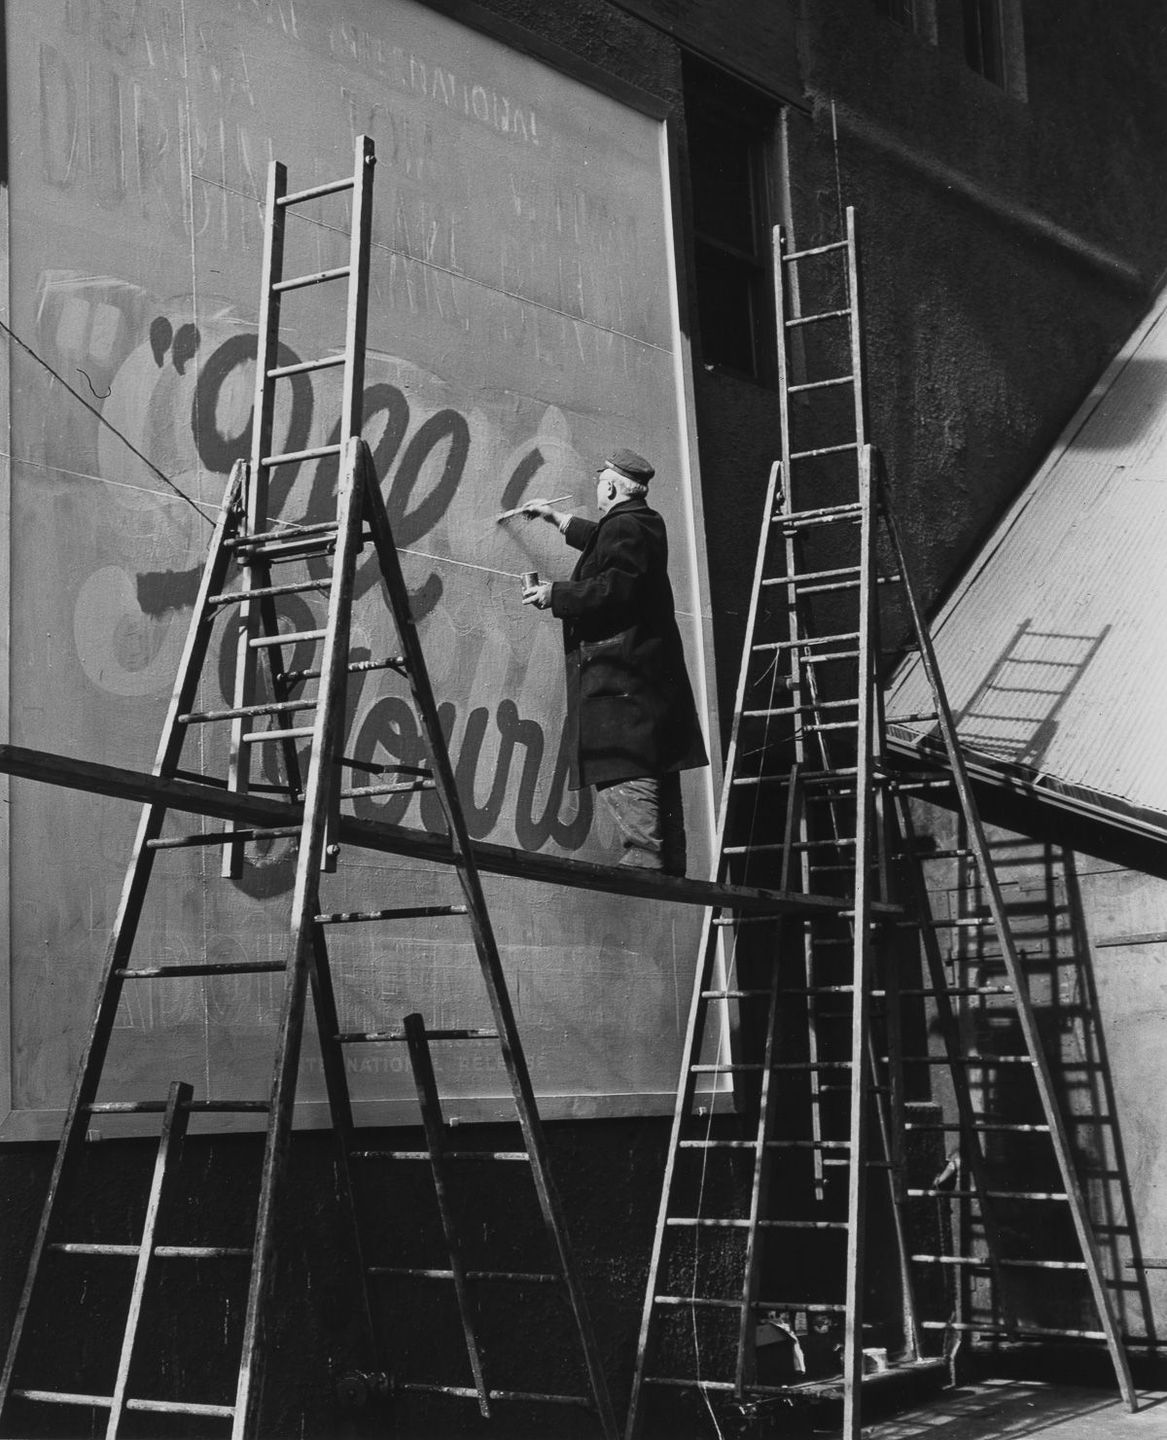 1946 Times Square sign painter.